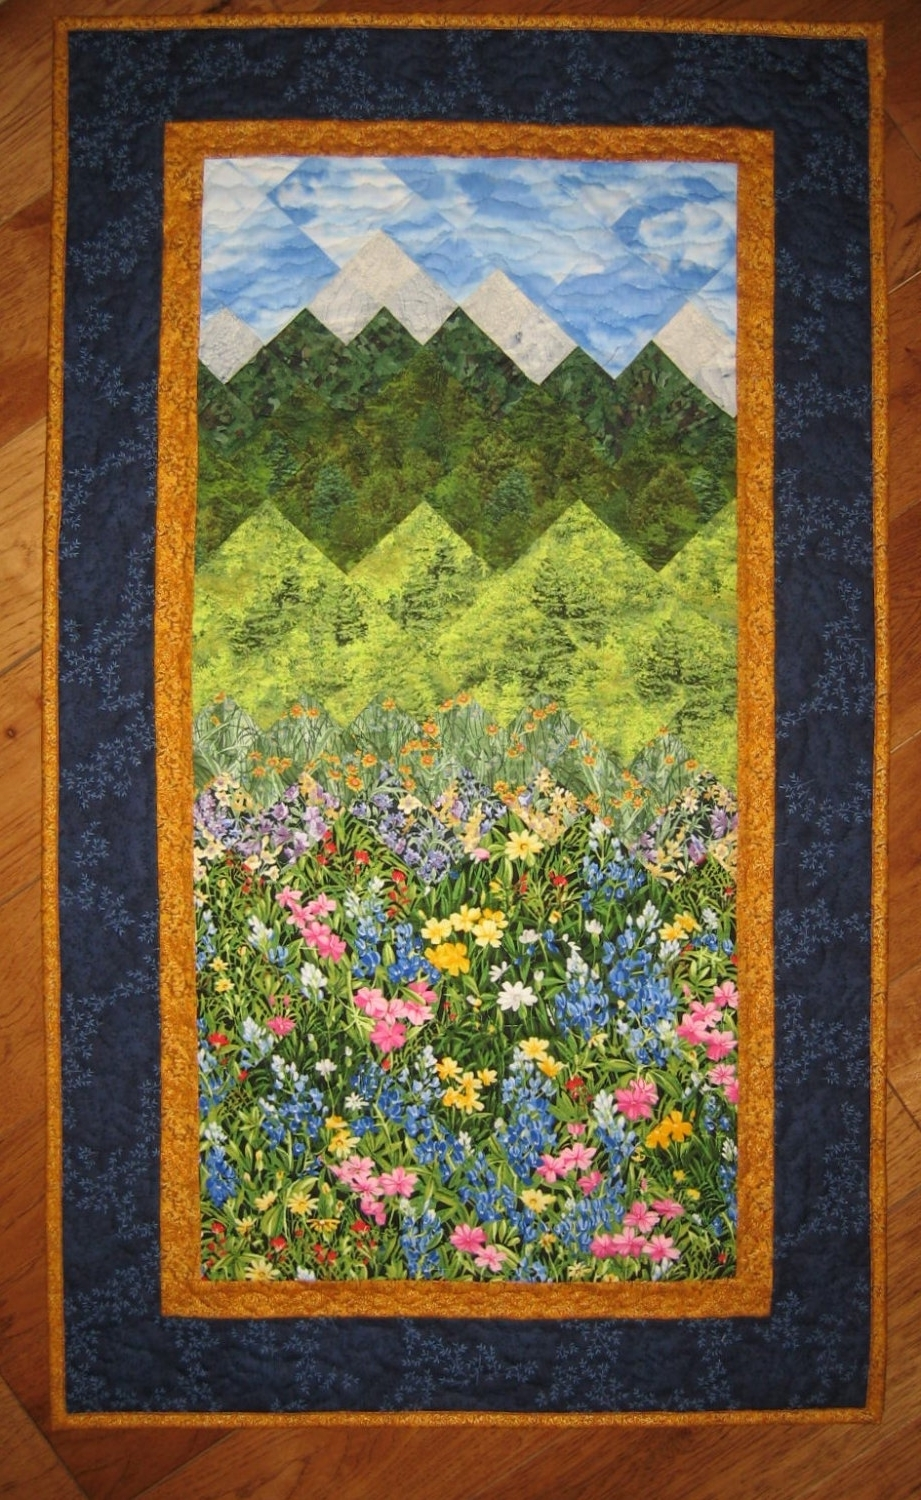 Quilt Fabric Wall Art Pertaining To Fashionable Summer Flowers And Mountains Art Quilt Fabric Wall Hanging Quilted (View 12 of 15)